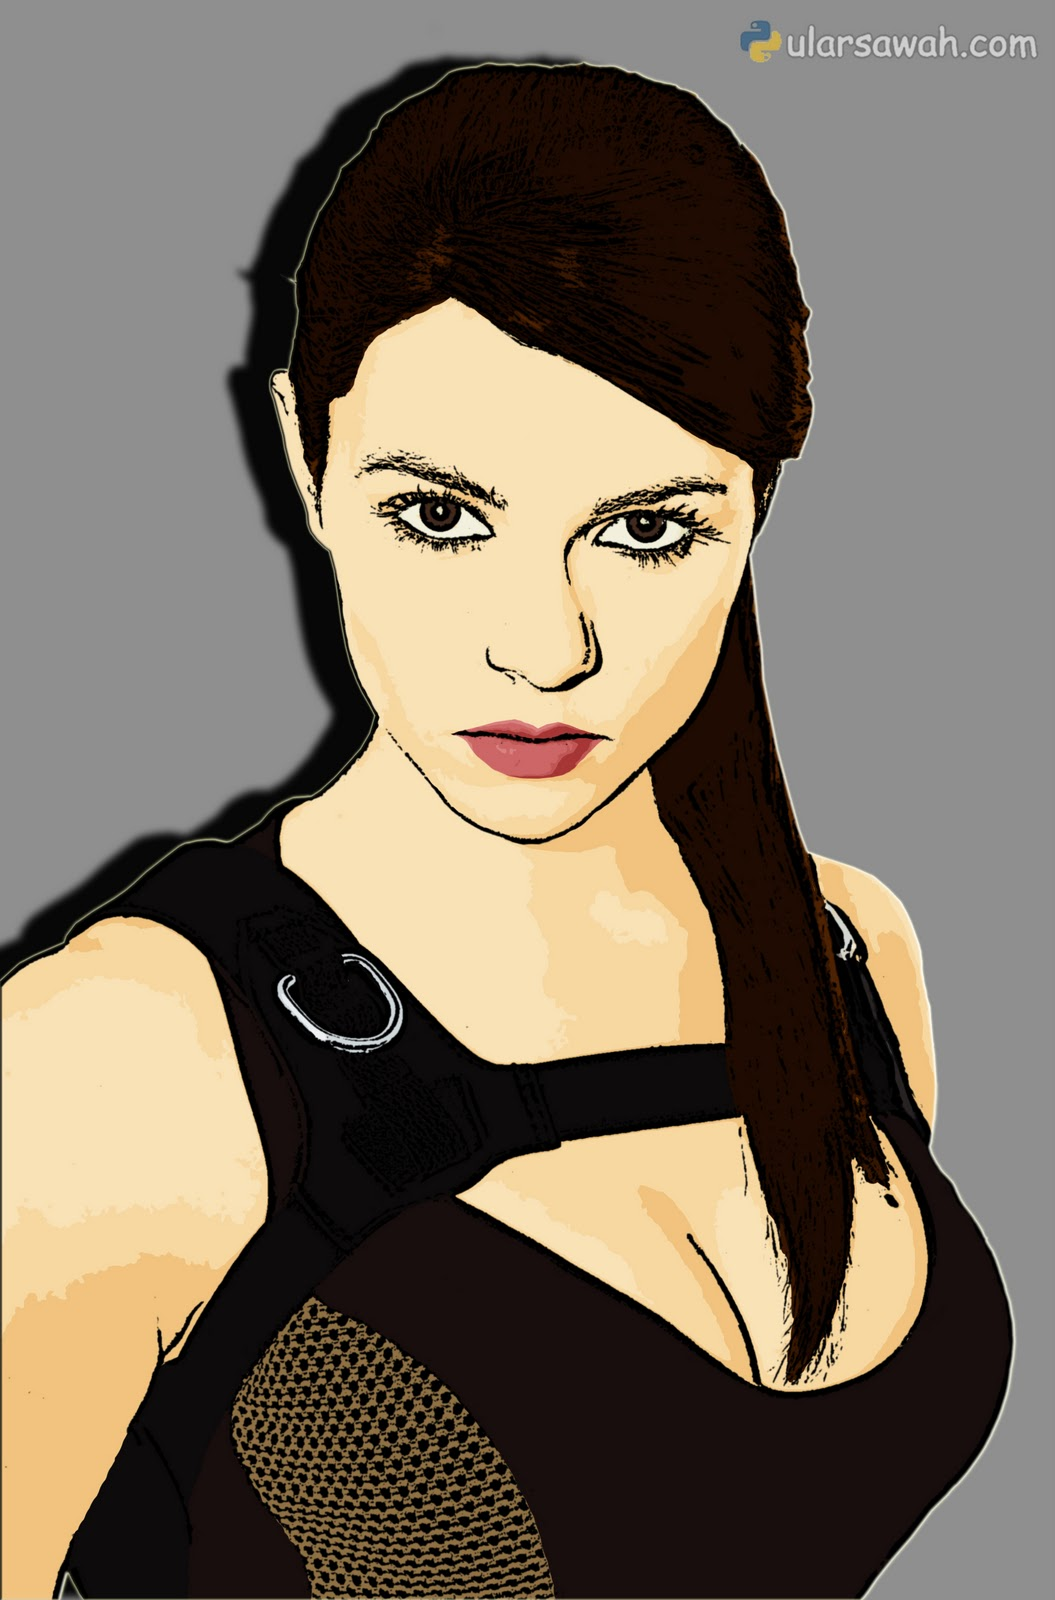 alison carroll cartoon photos ,tomb raider ,evolution of lara croft